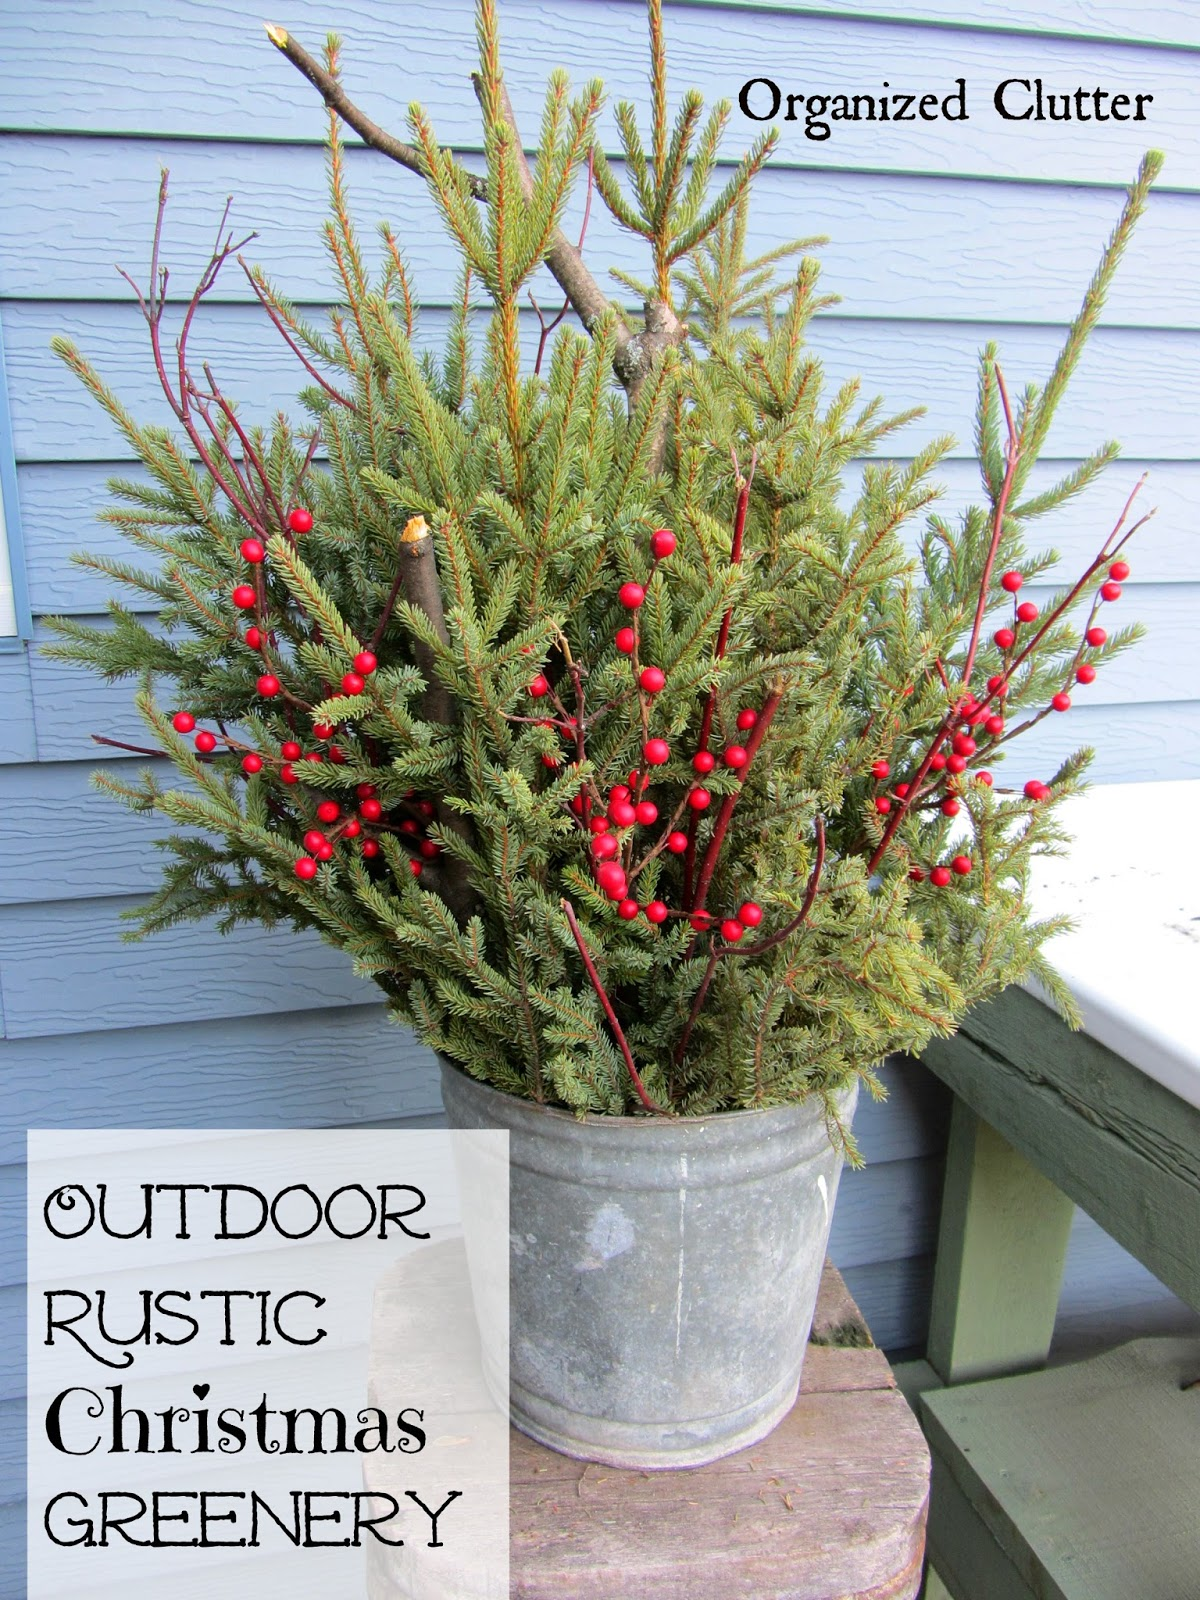 Rustic Christmas Outdoor Greenery Pails | Organized Clutter